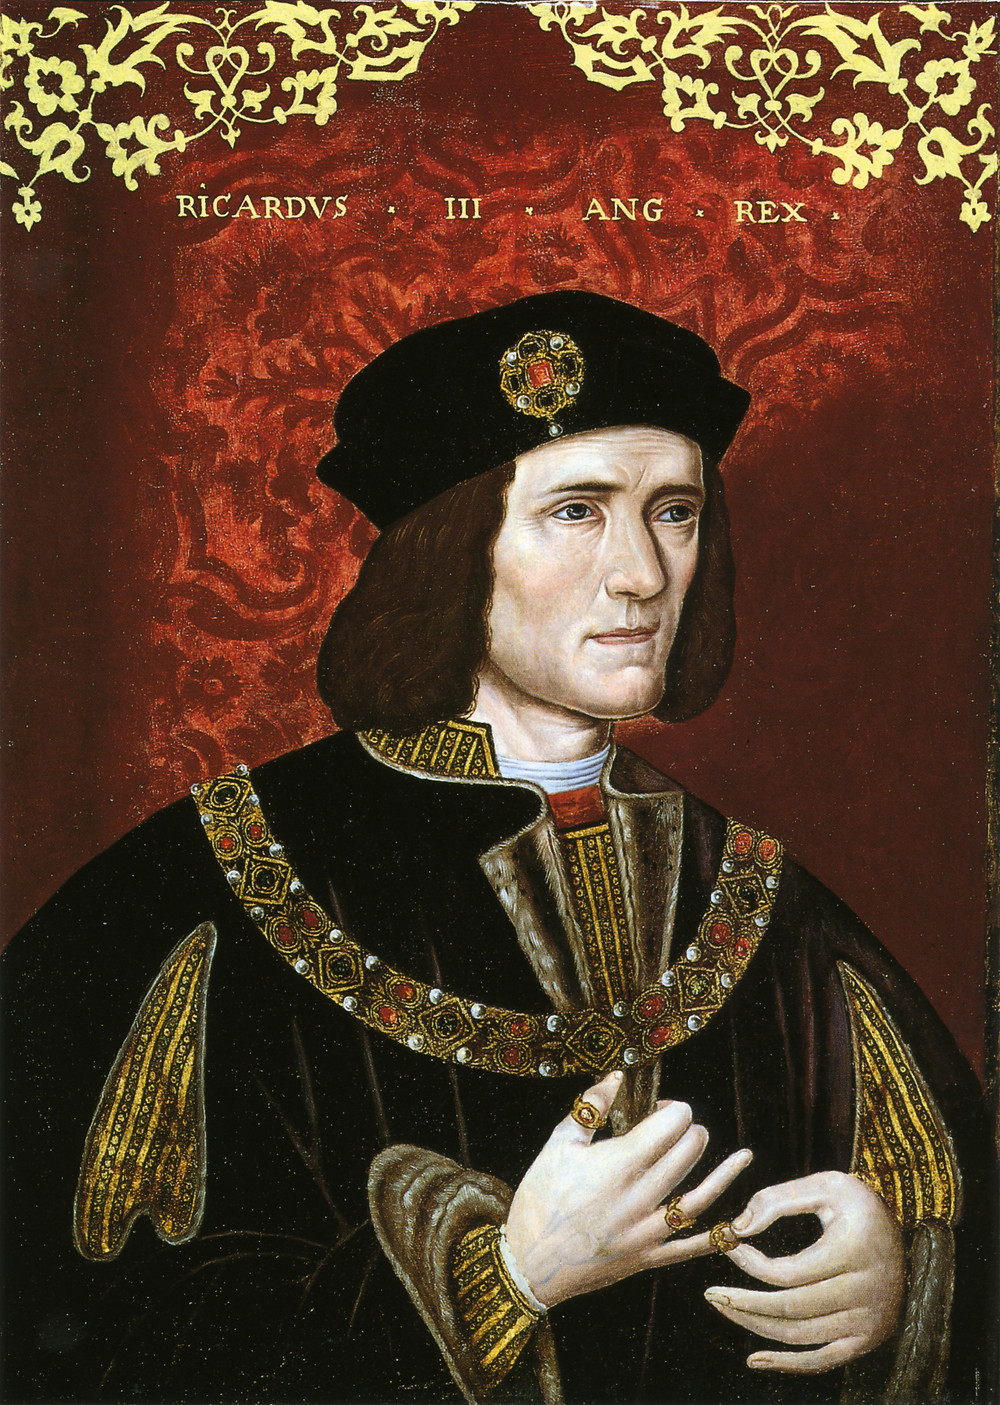 King Richard III, the last Plantagenet king of England, Late 16th-century portrait